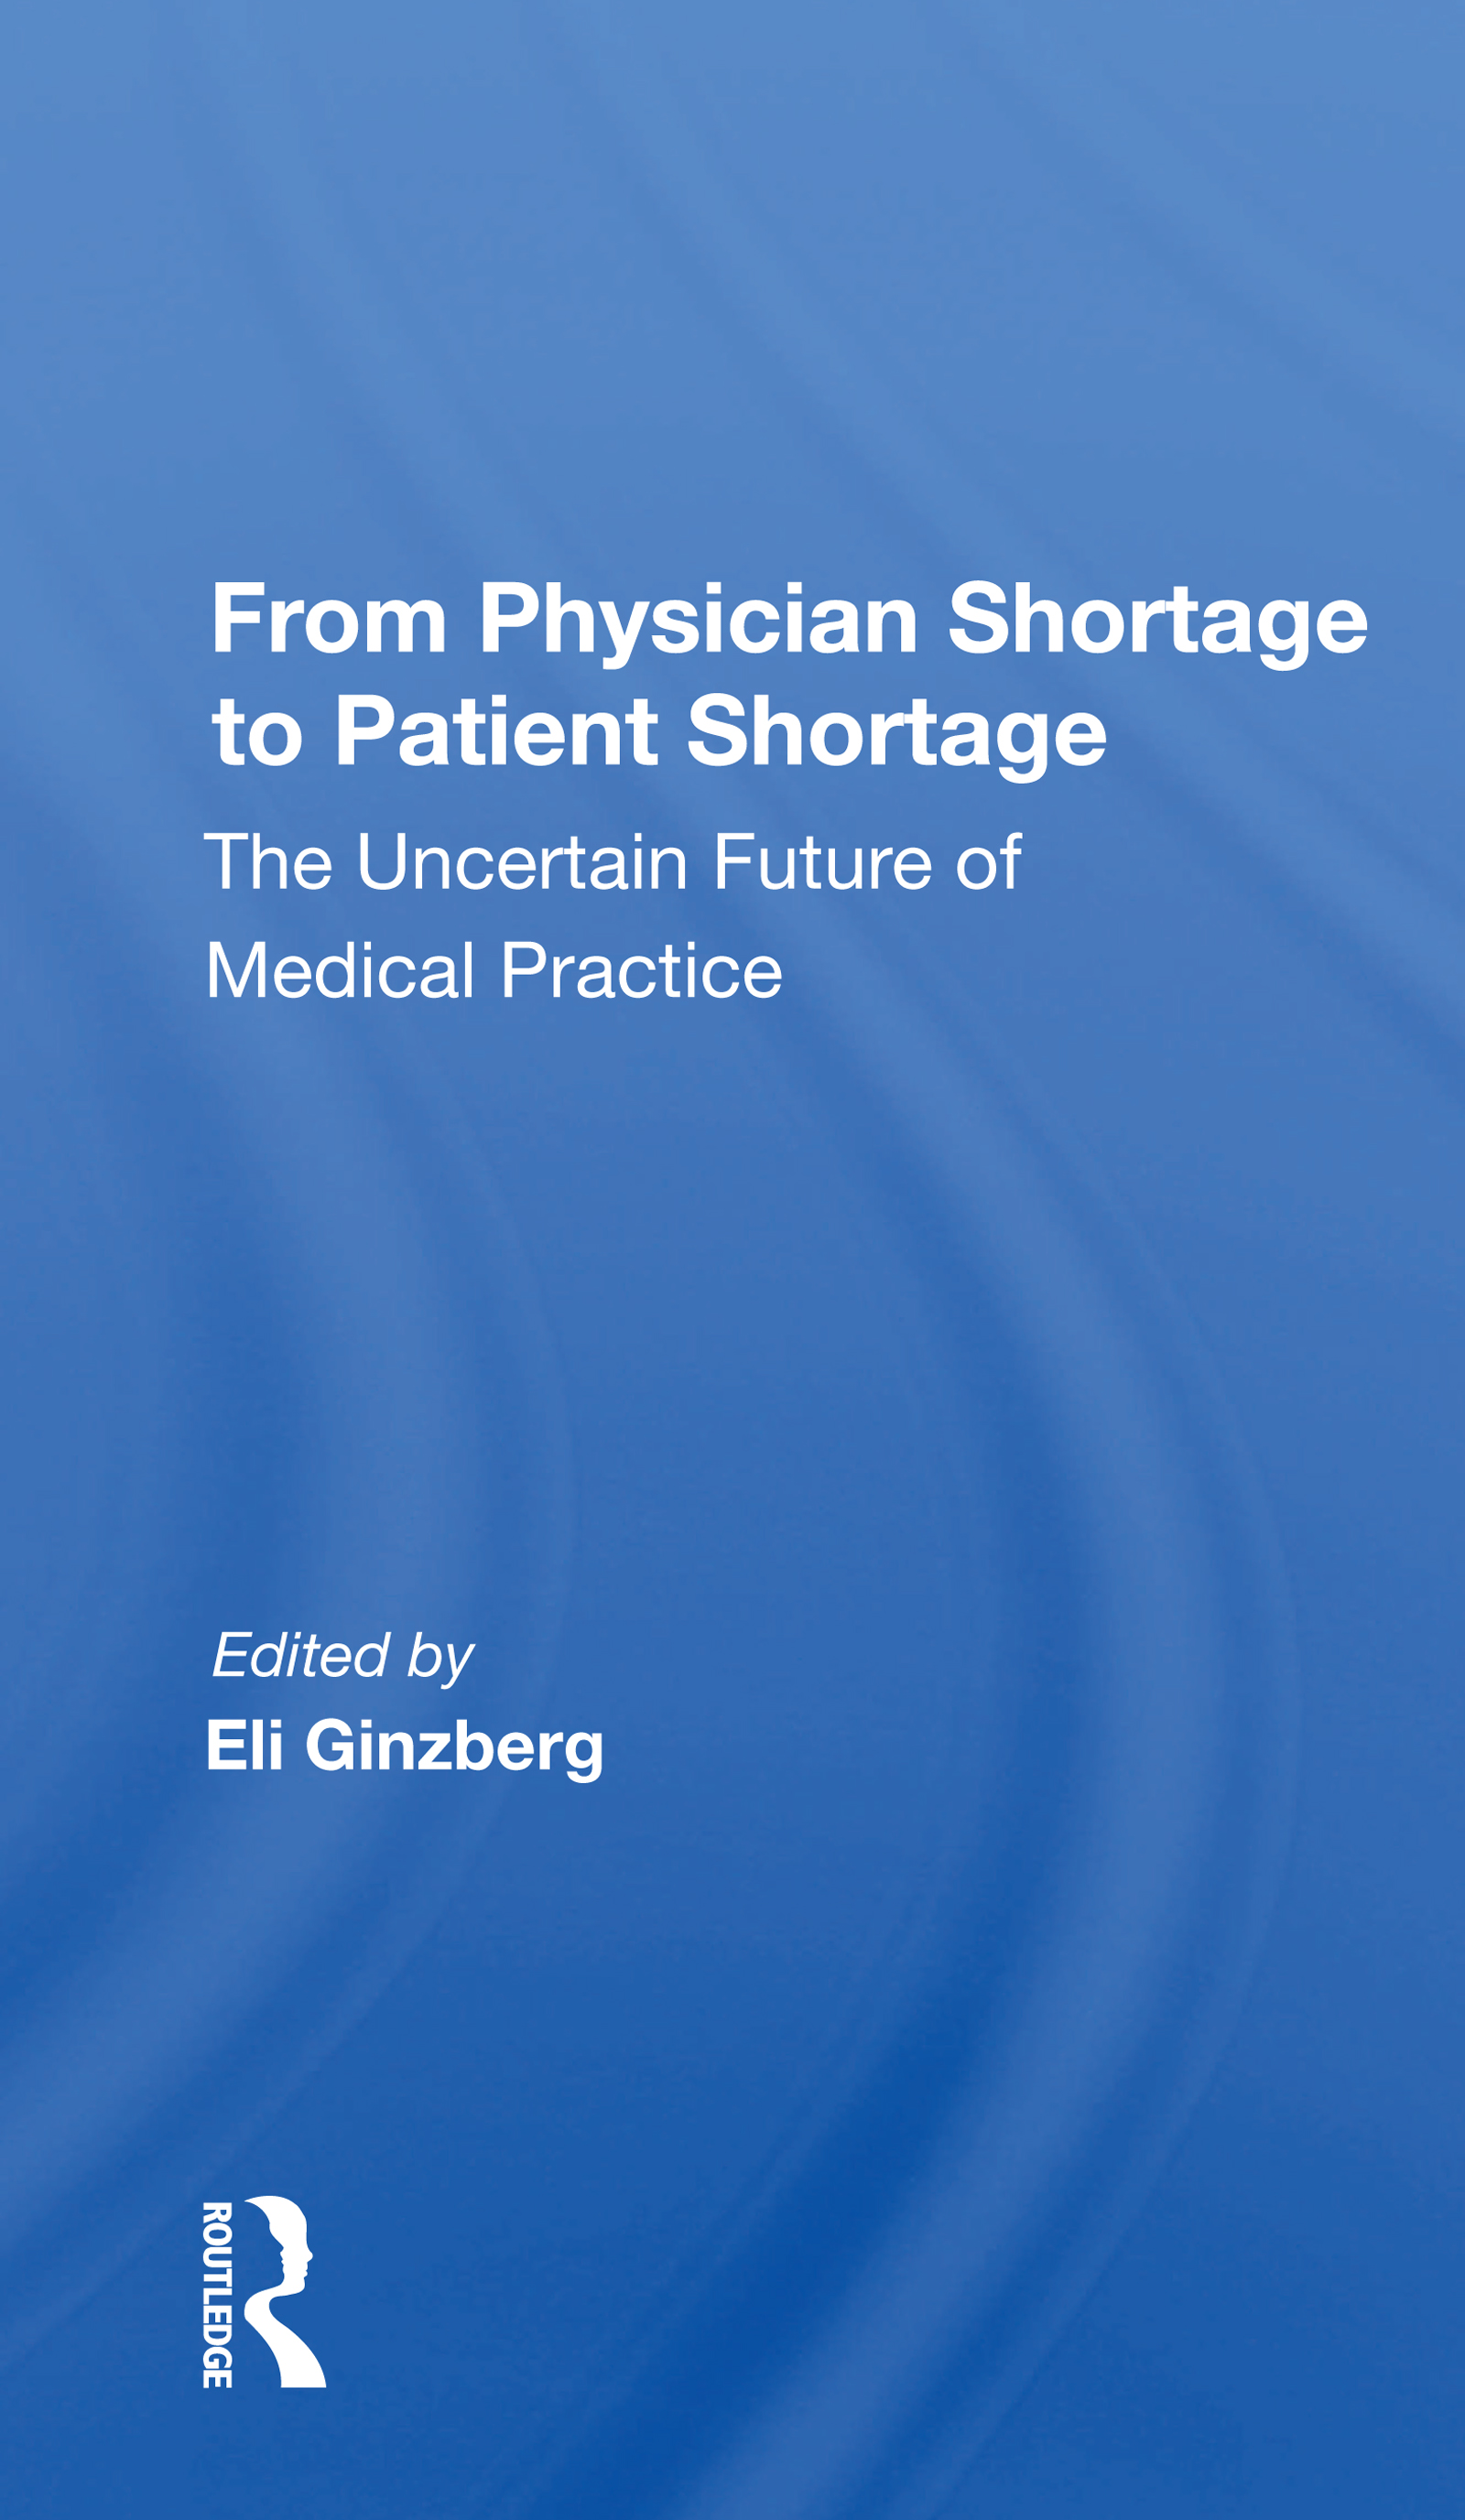 From Physician Shortage To Patient Shortage